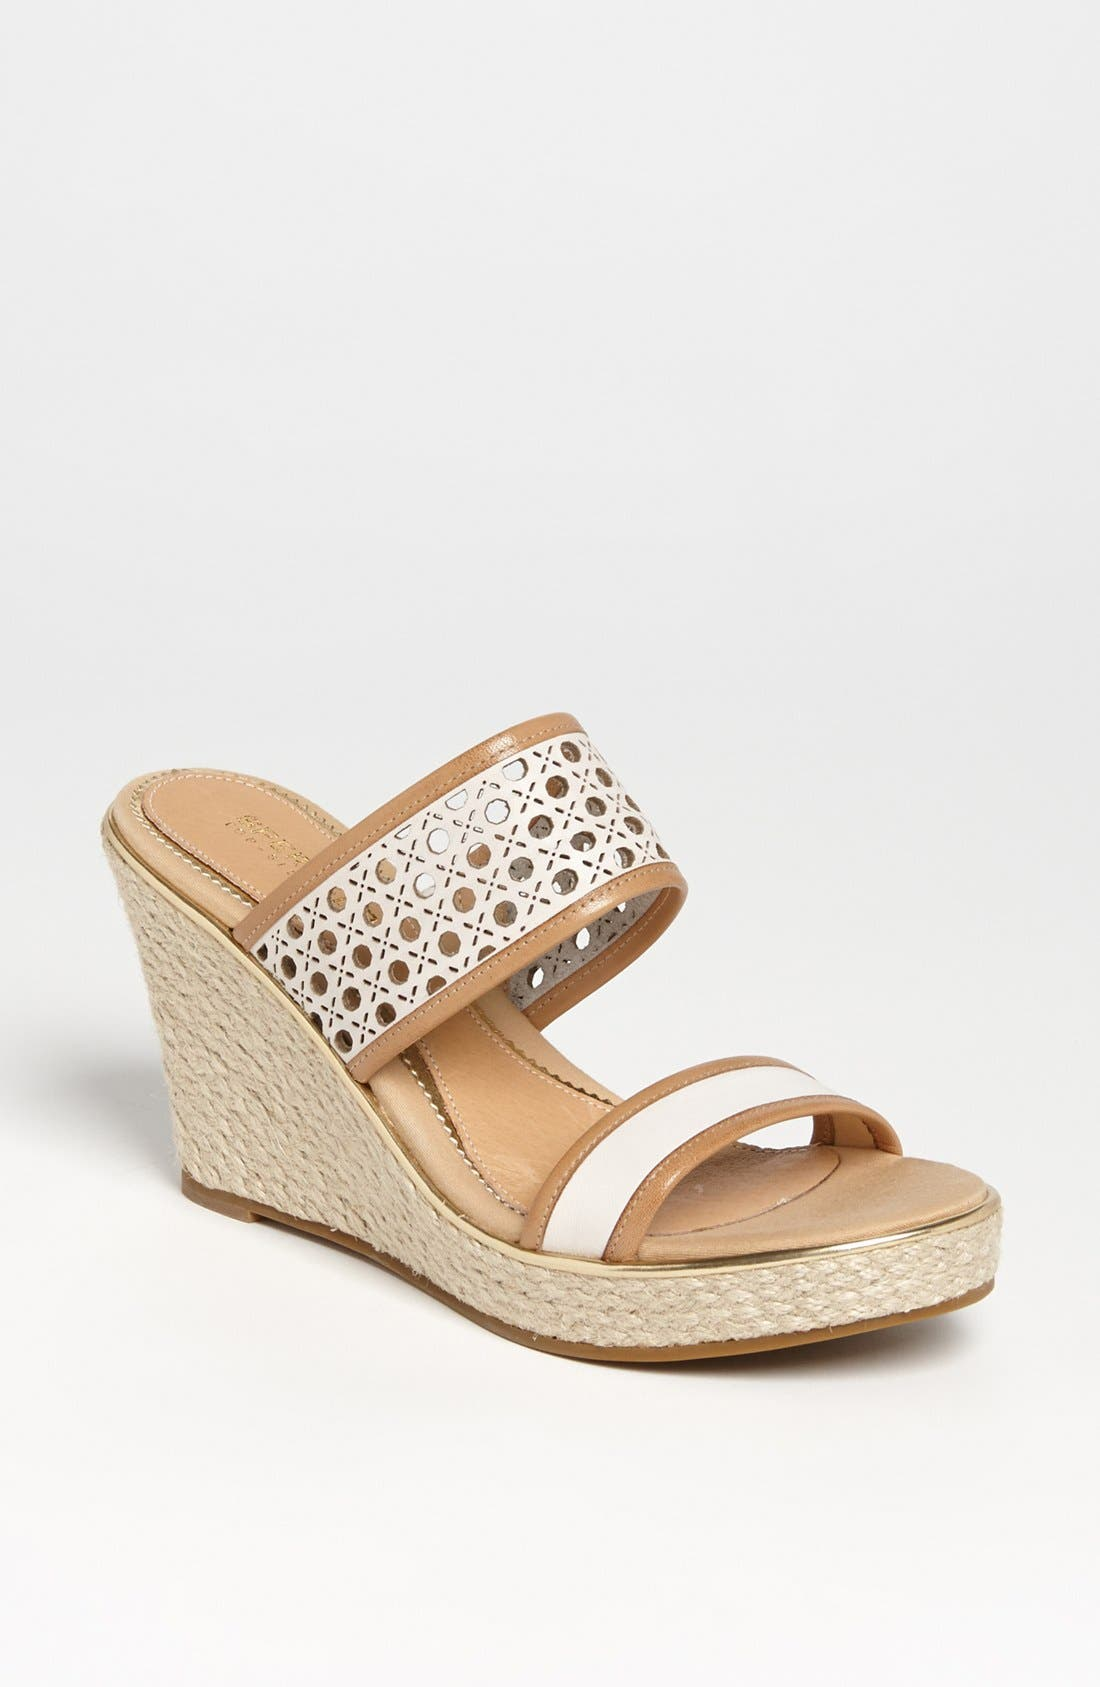 Alternate Image 1 Selected - Sperry Top-Sider® 'Florina' Wedge Sandal